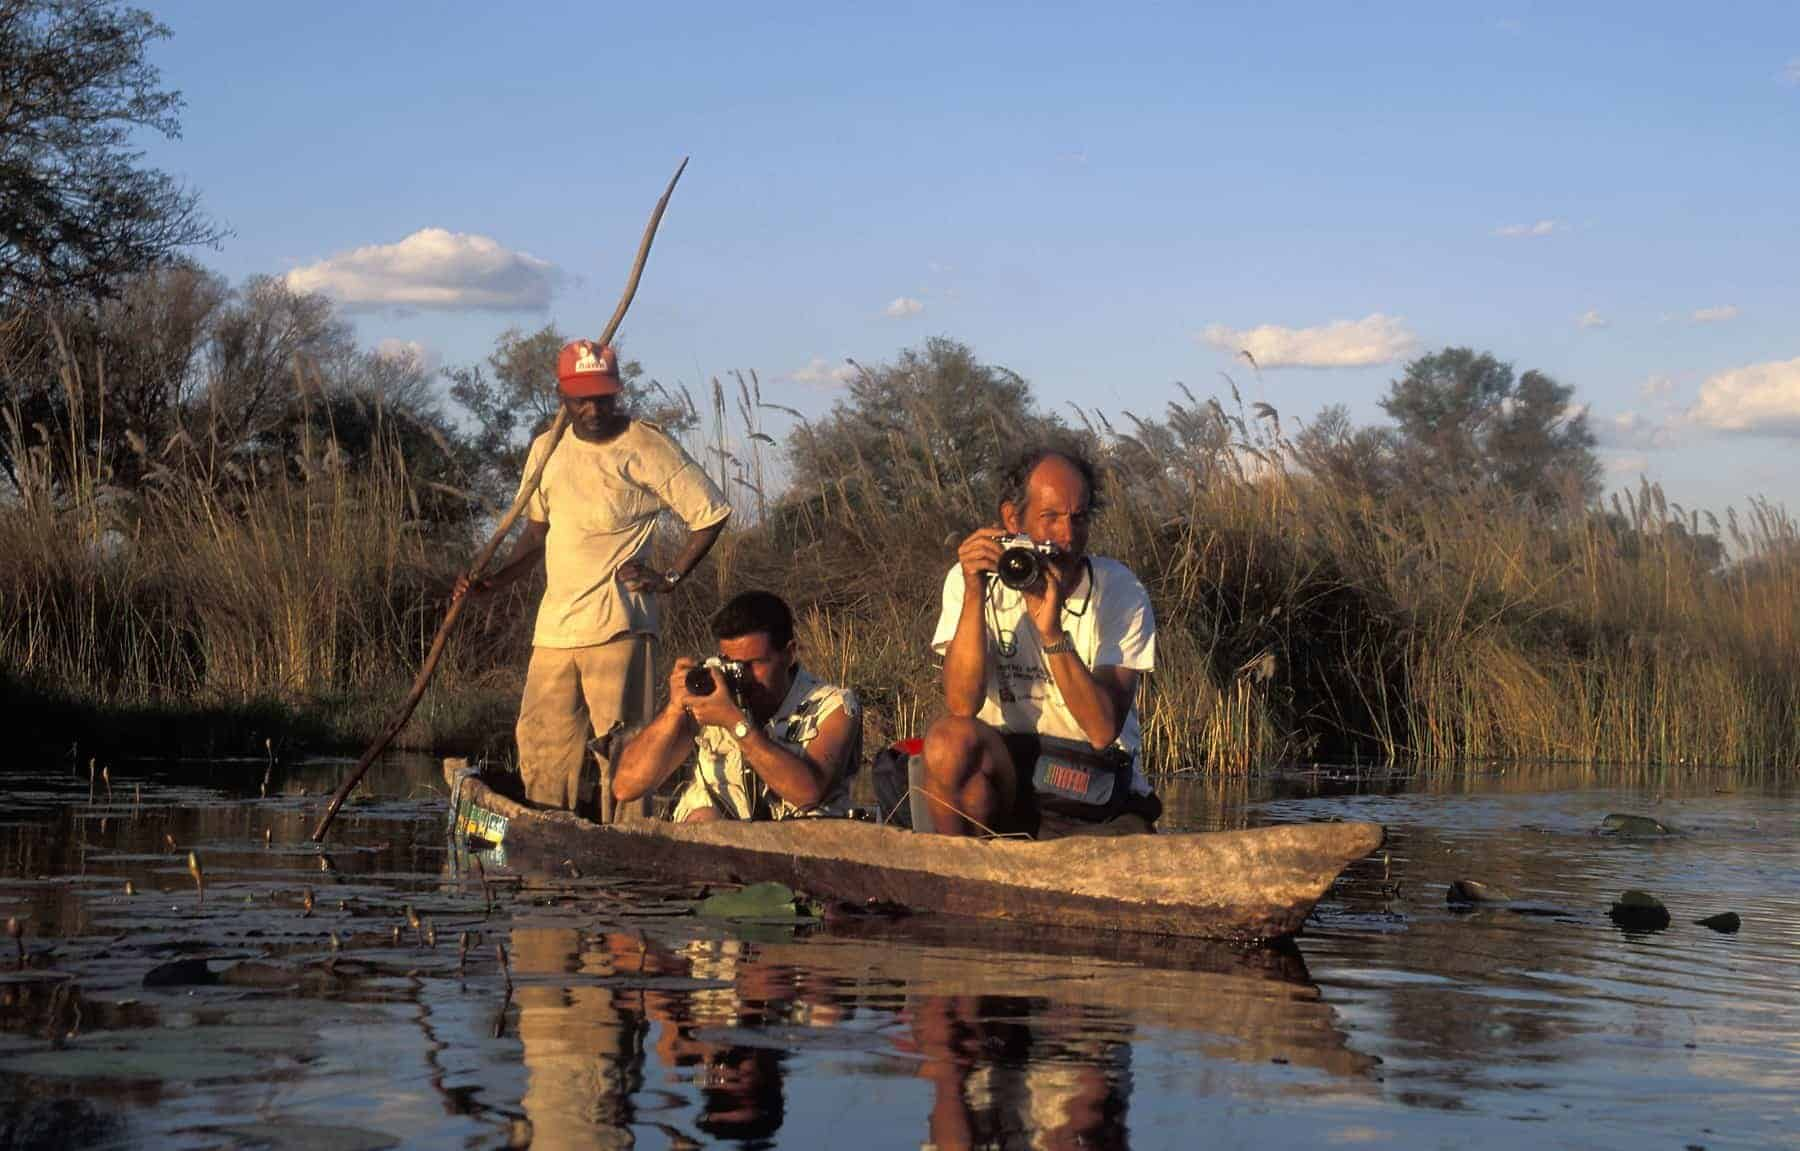 Tourists taking photos from a traditional canoe (mekoro). The mekoro is the typical boat used on the Okavango Delta in Botswana. Hewn from large trunked wild ebony, it is manoeuvred using one wooden pole.